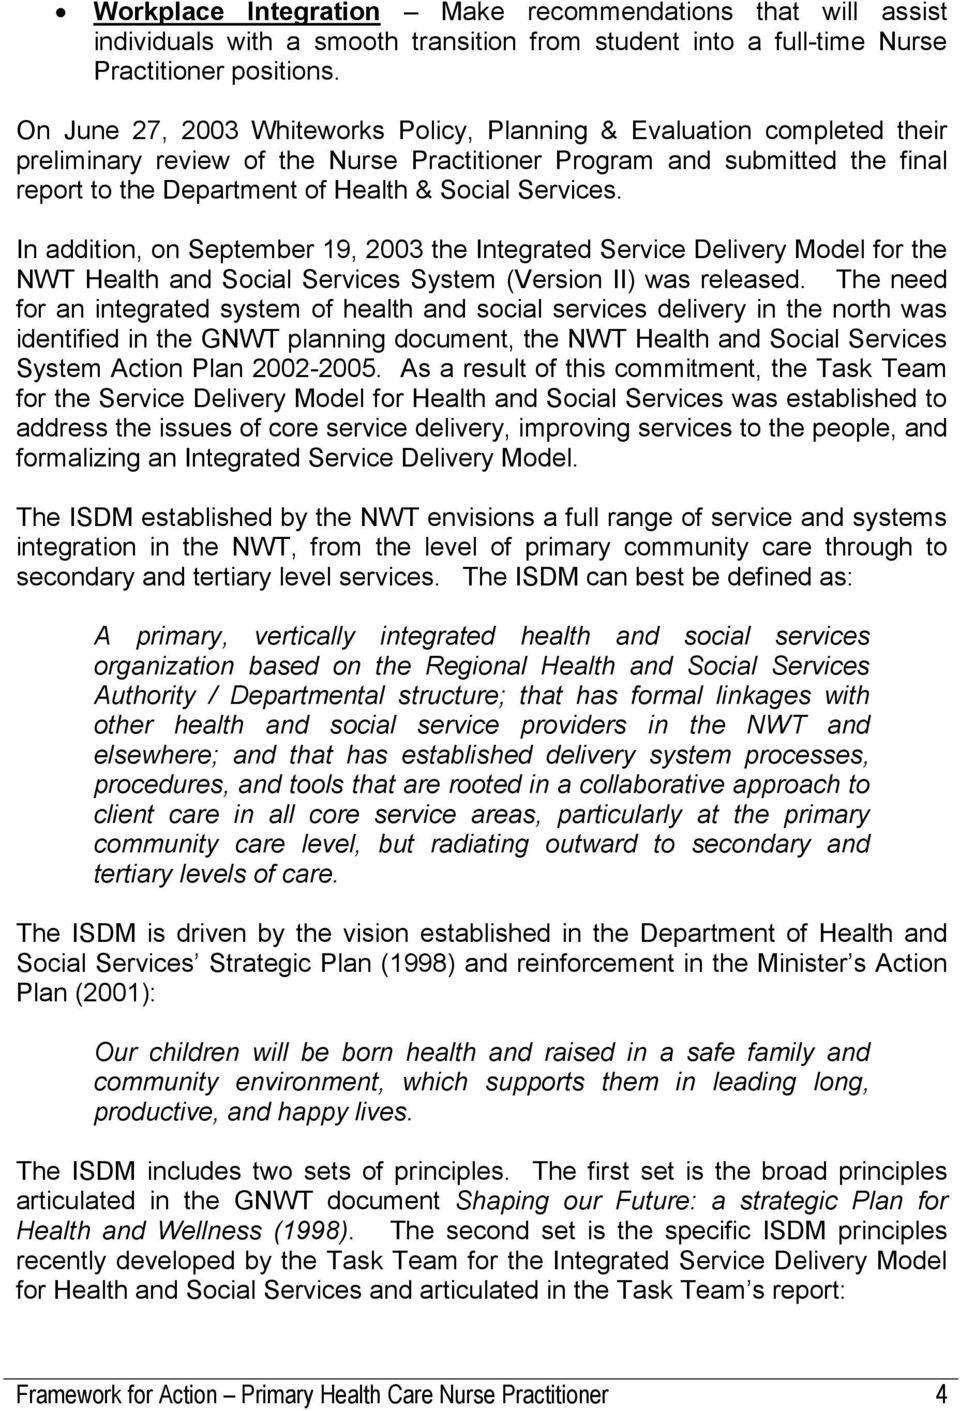 Services. In addition, on September 19, 2003 the Integrated Service Delivery Model for the NWT Health and Social Services System (Version II) was released.